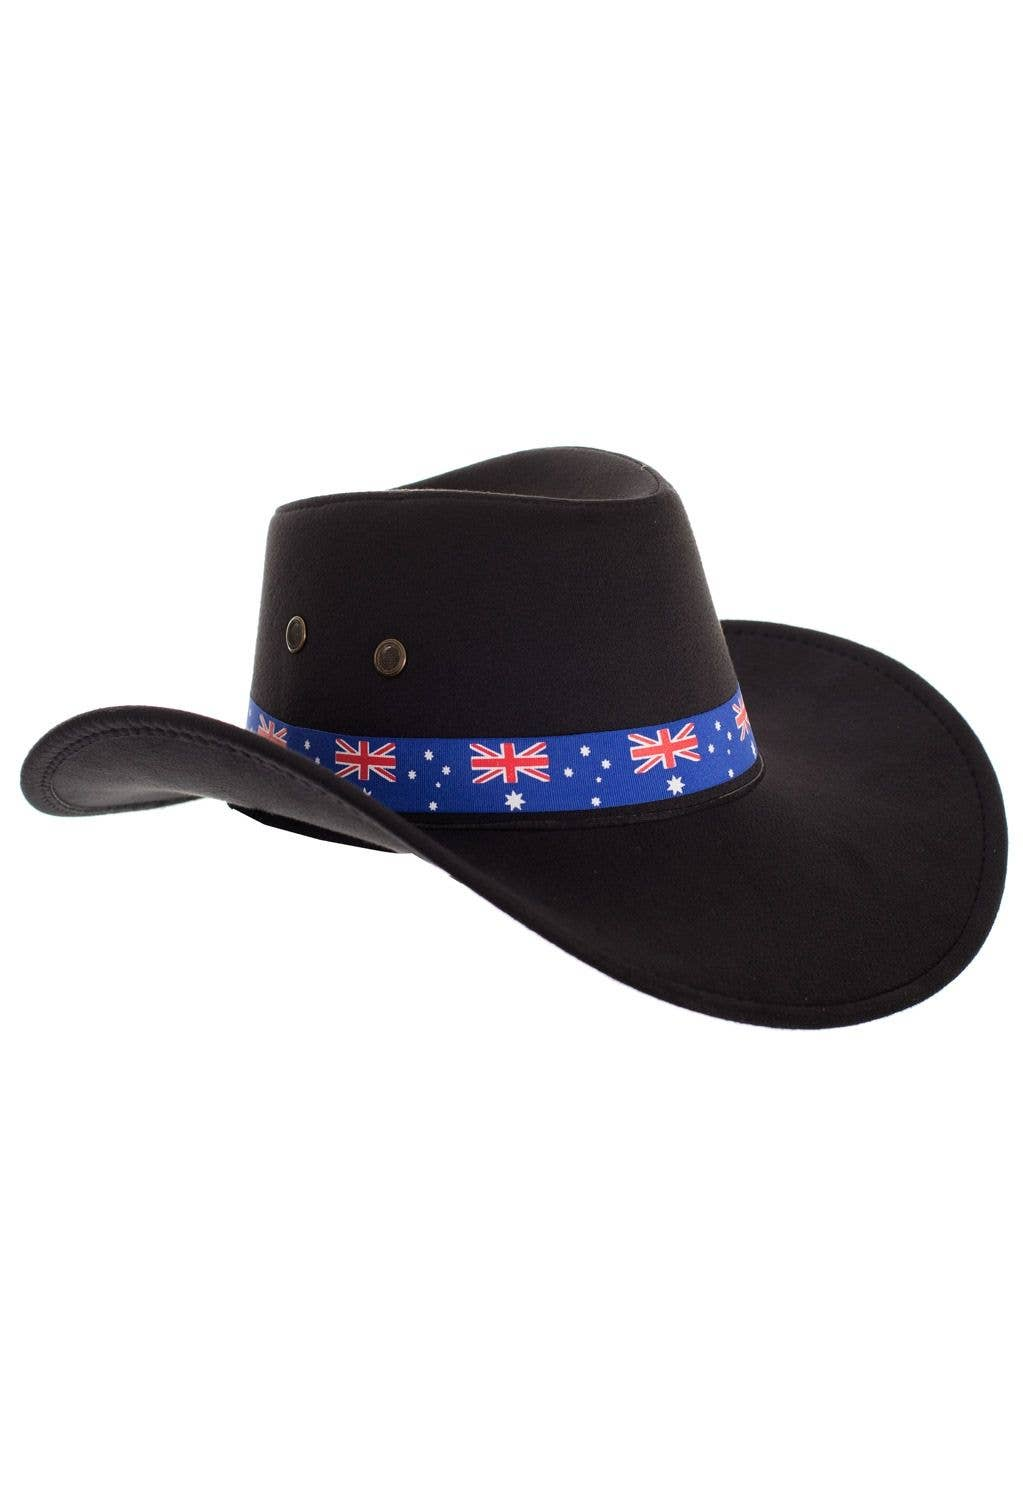 0bec677e9 Black Akubra Style Australia Day Cowboy Hat Costume Accessory